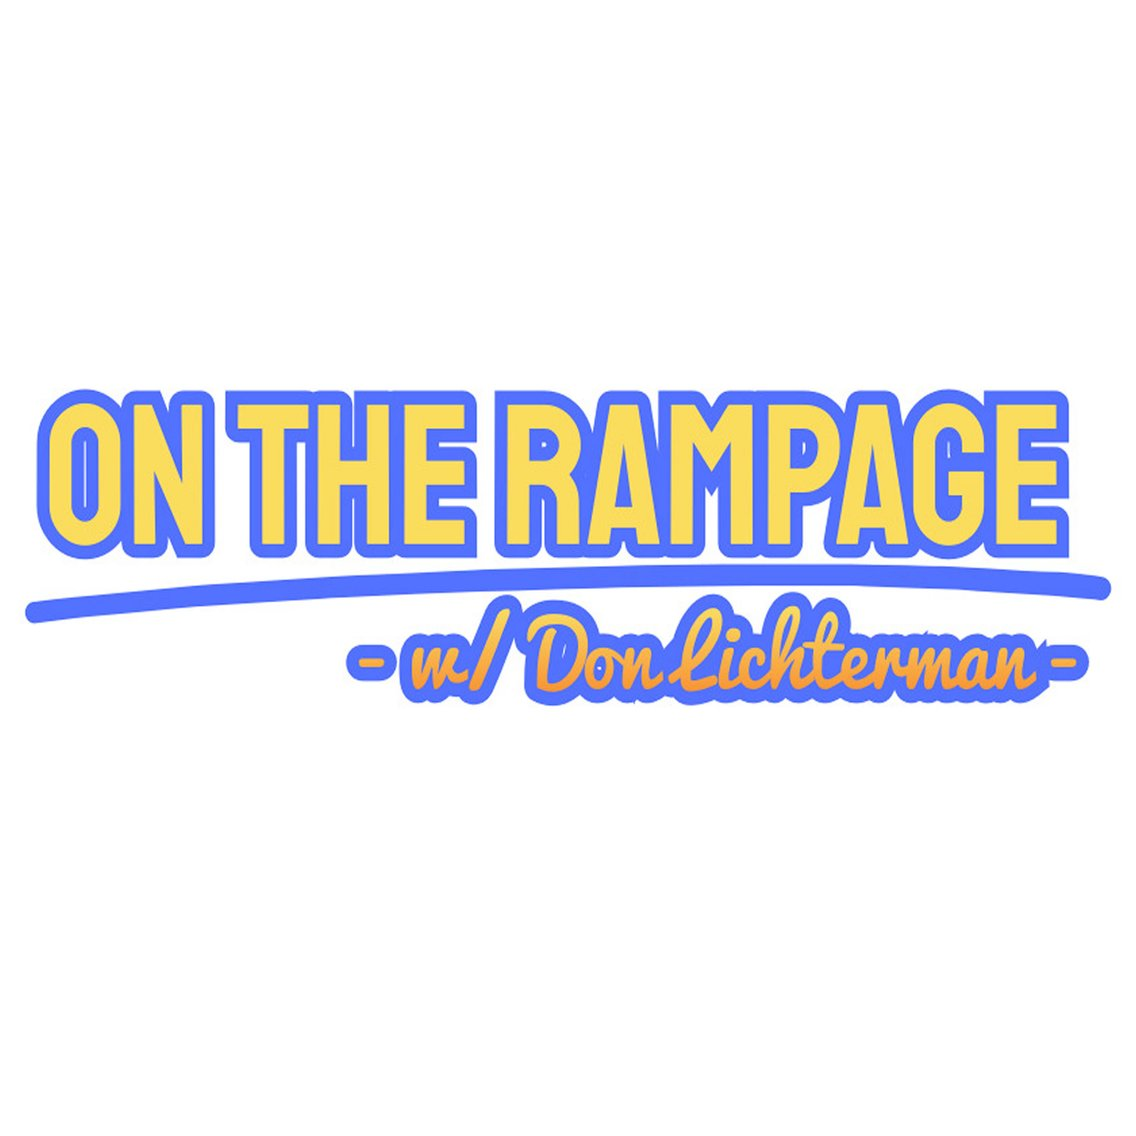 On The Rampage w/ Don Lichterman - Cover Image